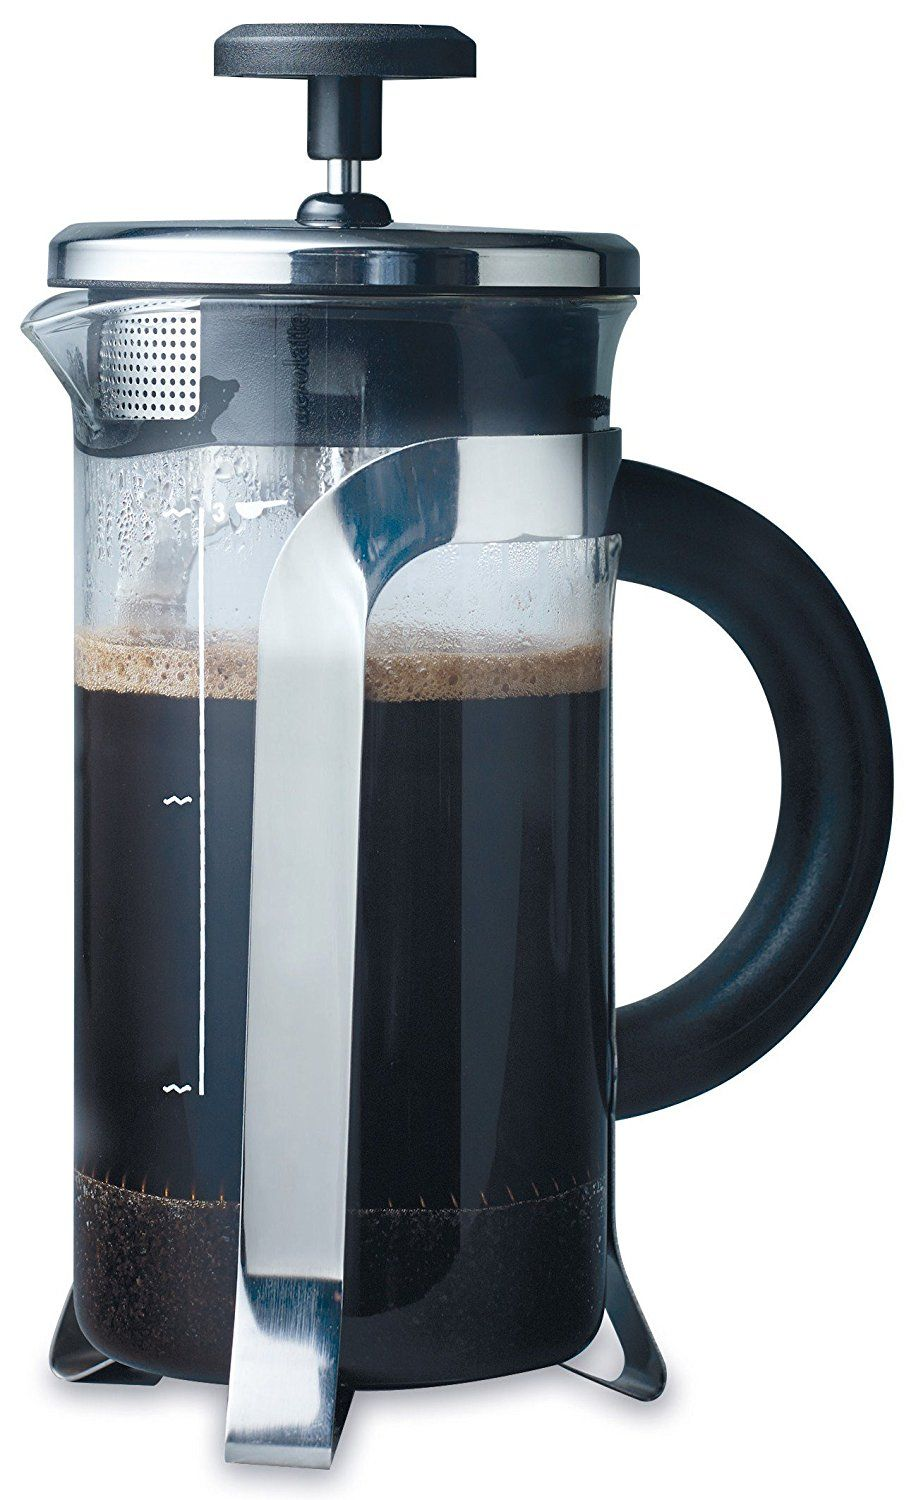 aerolatte 3Cup French Press Coffee Maker, 12Ounce